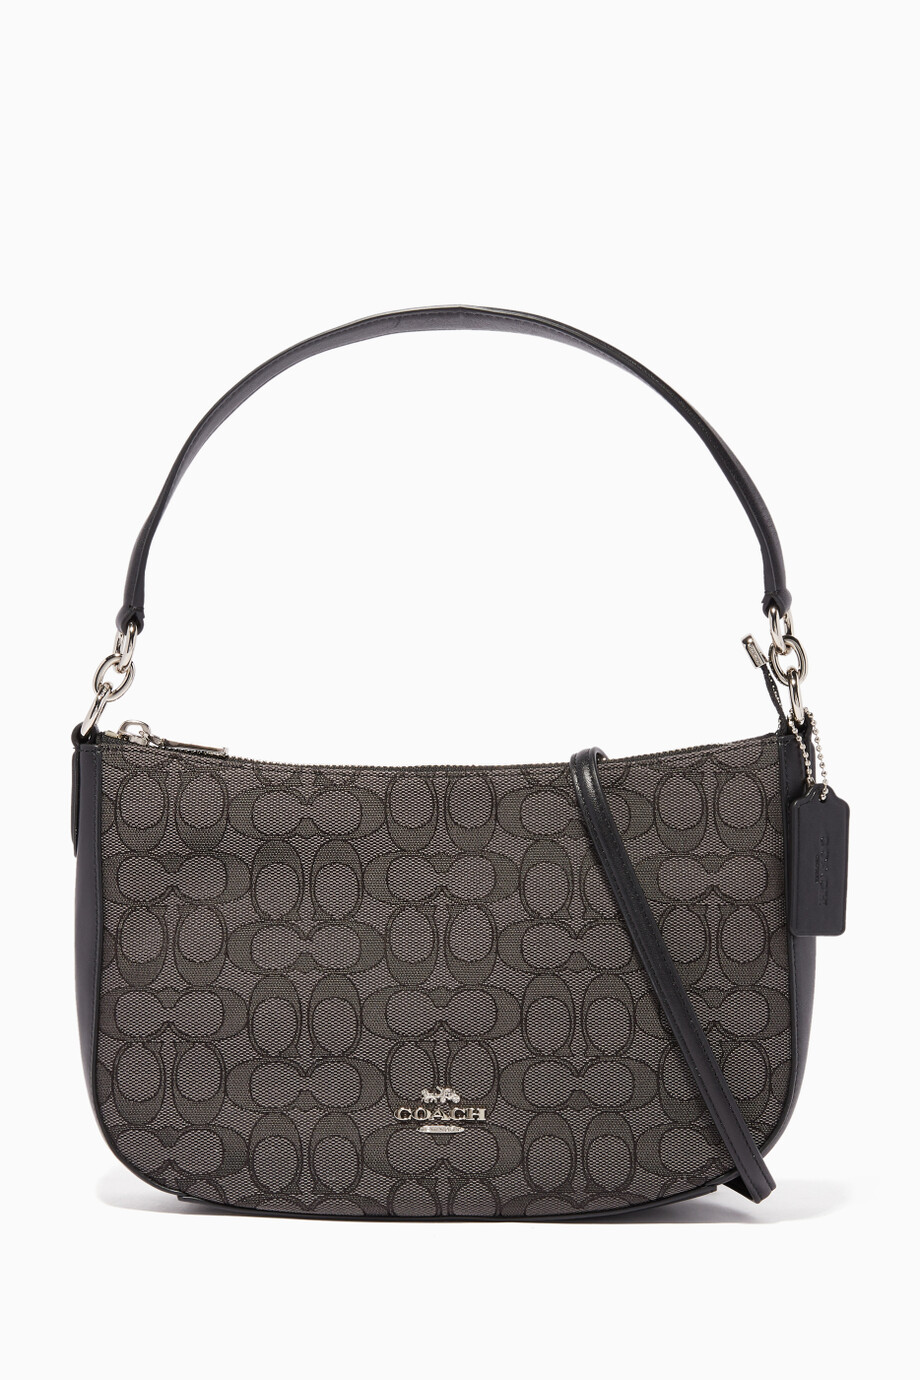 ef56b025 Shop Coach Black Black-Smoke Jacquard Chelsea Shoulder Bag ...